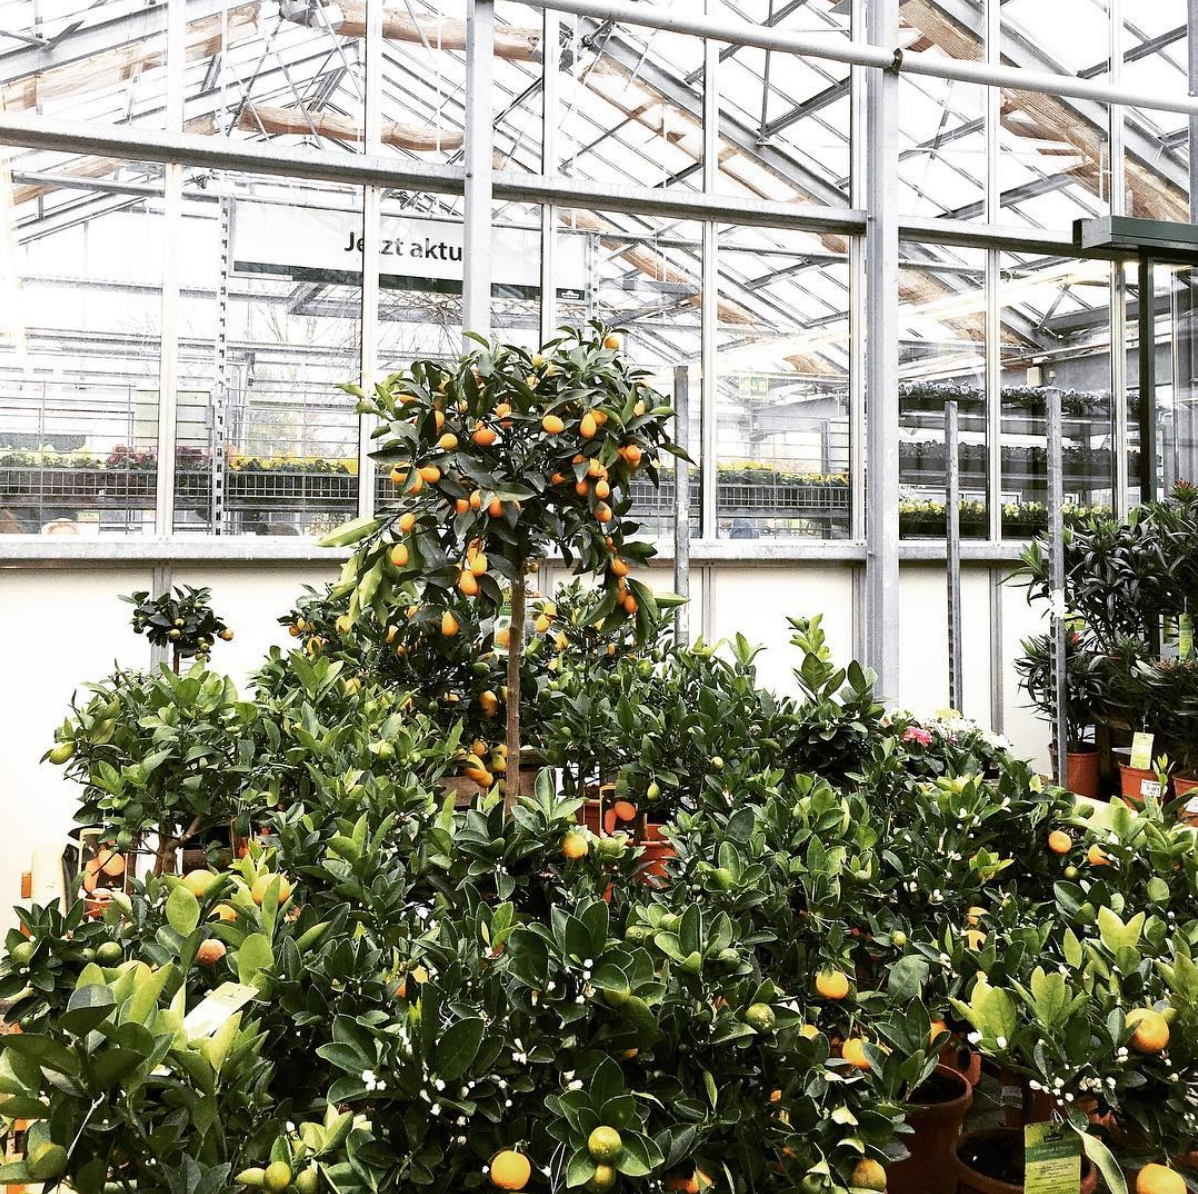 🍊 #plants #orange #urbanjungle #greenery #orangetree #plantsmakepeoplehappy #plantlover #greenhouse